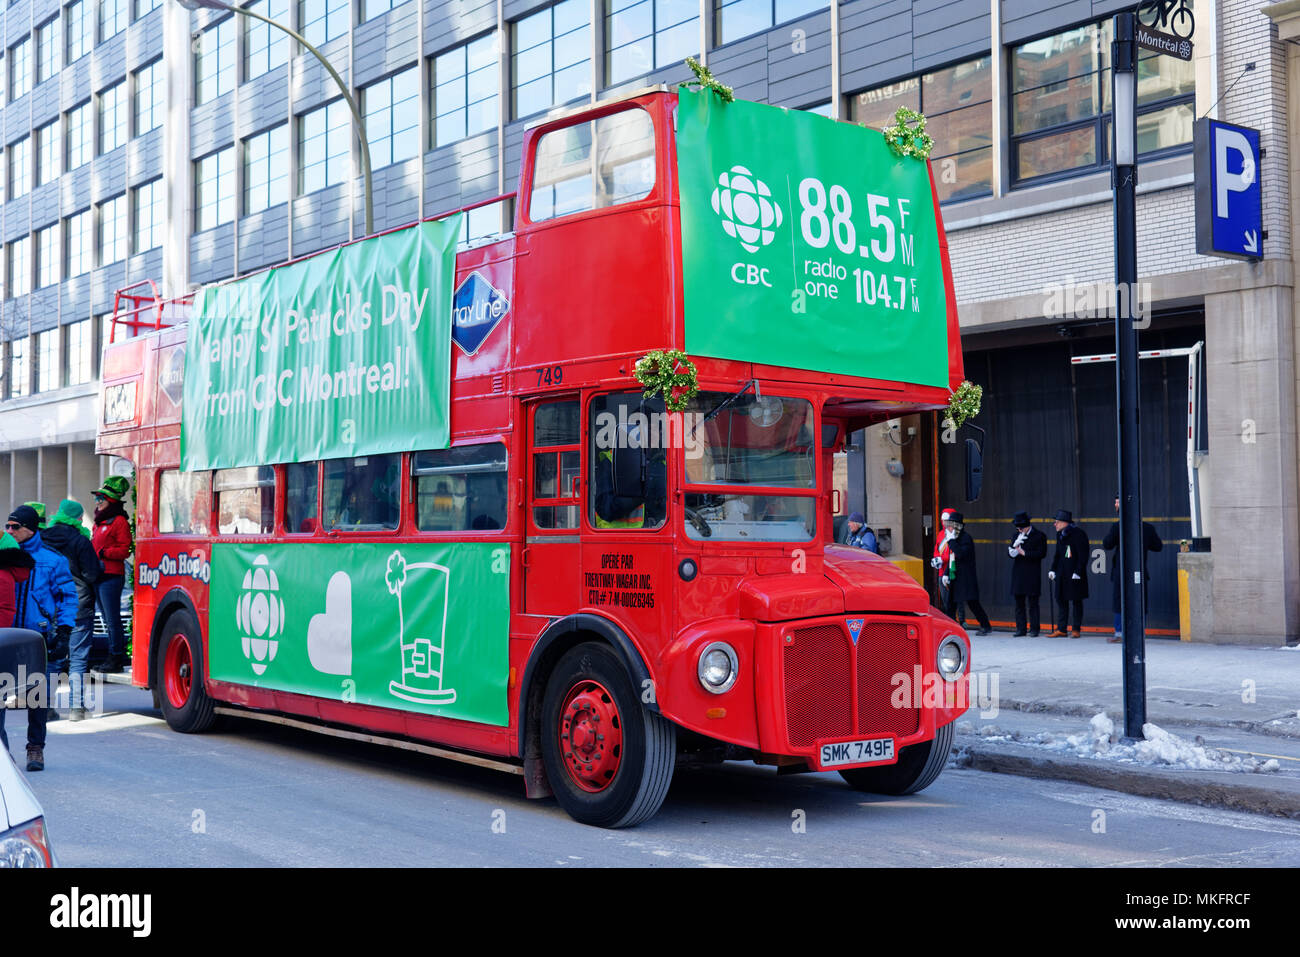 A Routemaster red double decker bus in Montreal in the St Patrick's Day parade - Stock Image